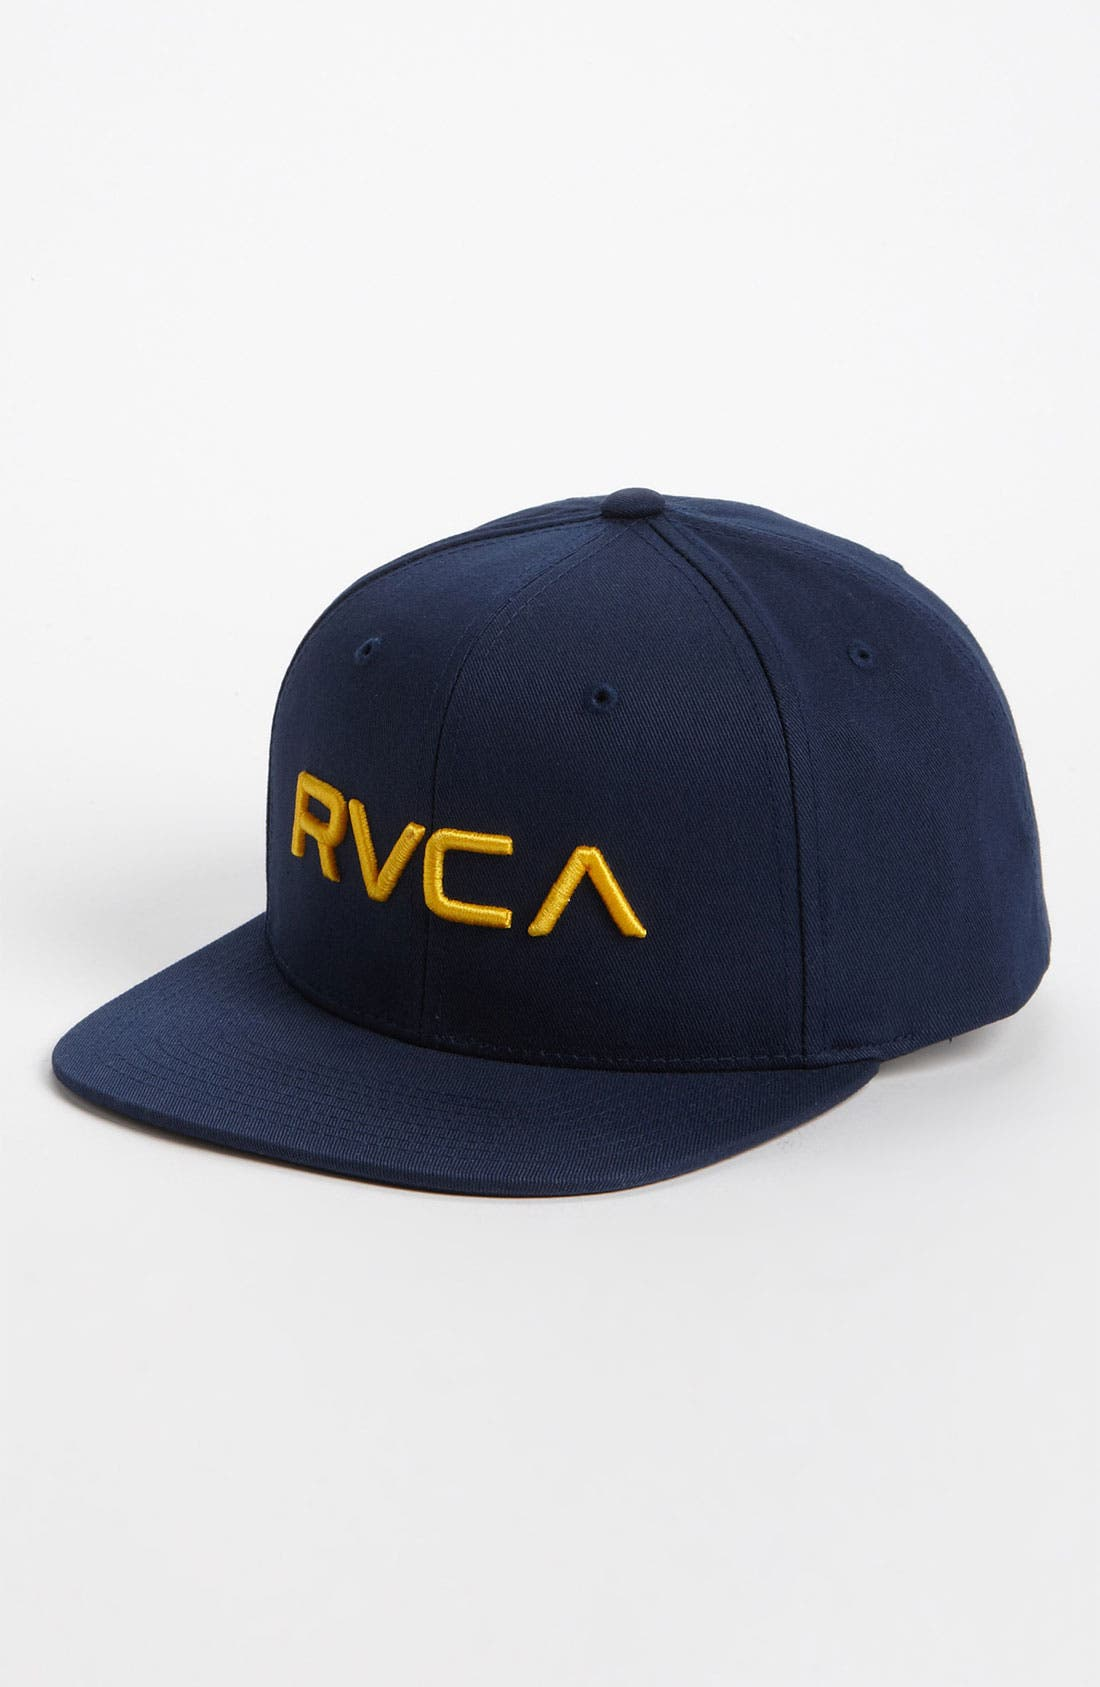 Alternate Image 1 Selected - RVCA Snapback Baseball Cap